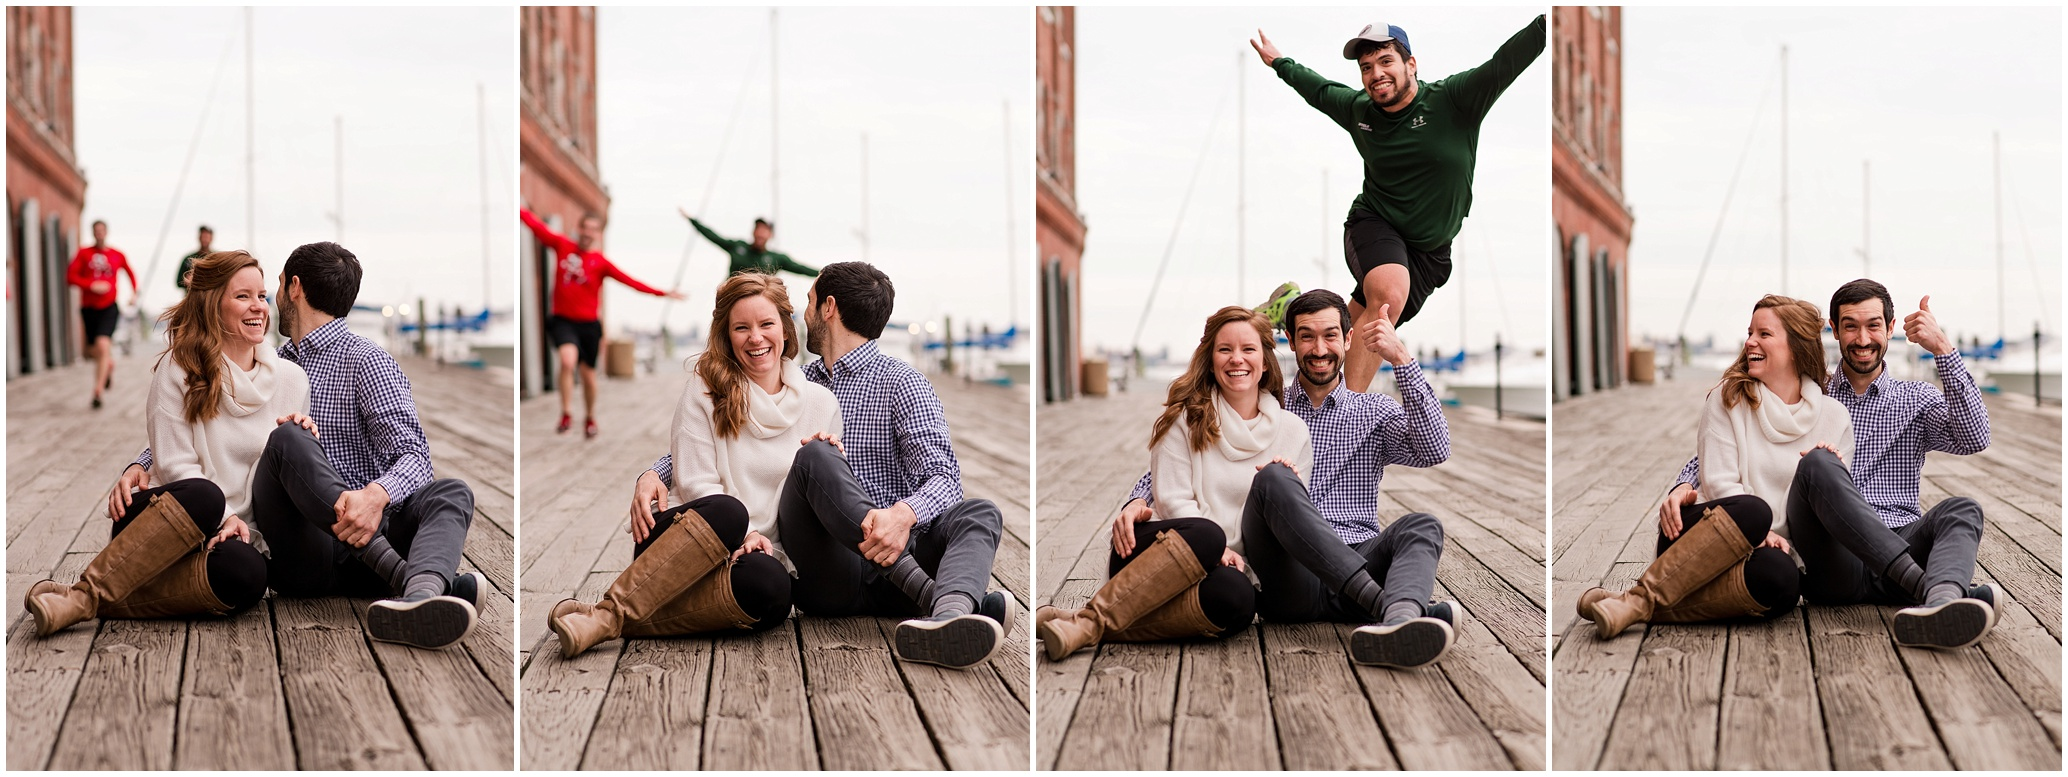 Hannah Leigh Photography Fell Point Baltimore MD Engagement Session_3540.jpg